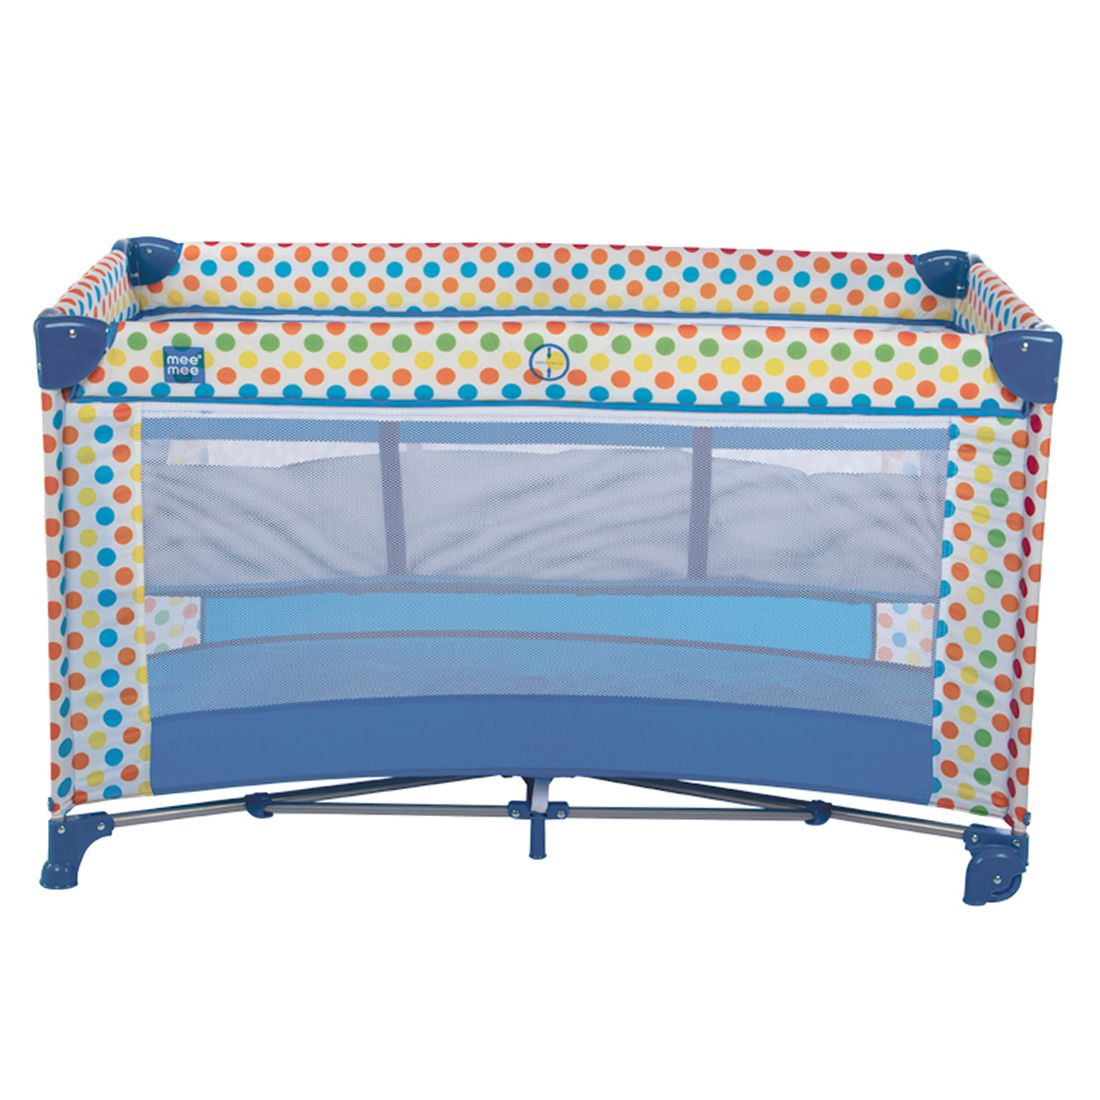 Mee Mee Compact 2 in 1 Play Pen & Crib (Blue)